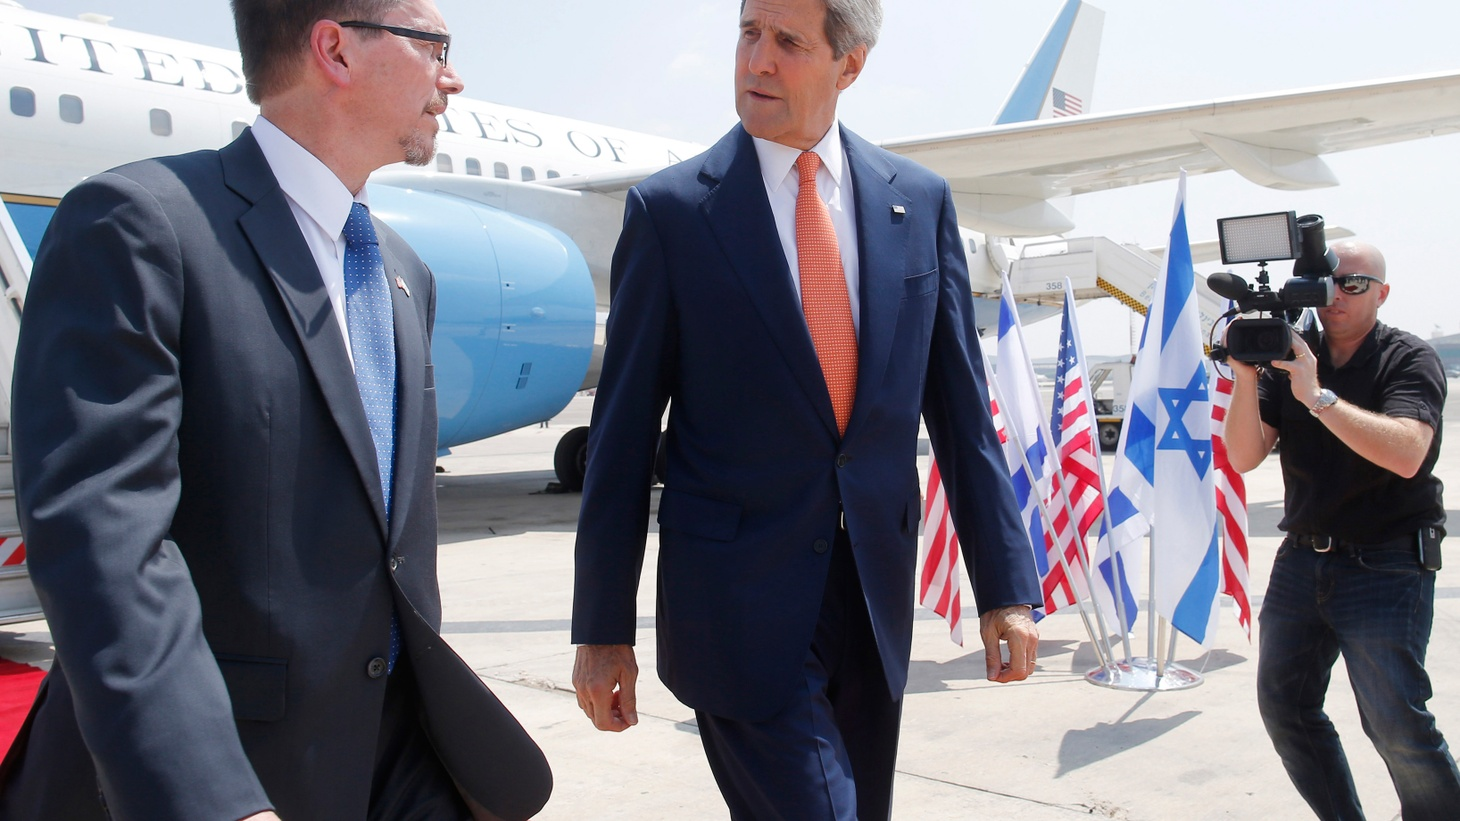 Secretary of State Kerry is shuttling around the Middle East in the hope of negotiating a ceasefire in the Gaza Strip. We'll hear about the challenges for international leaders as the war goes on.